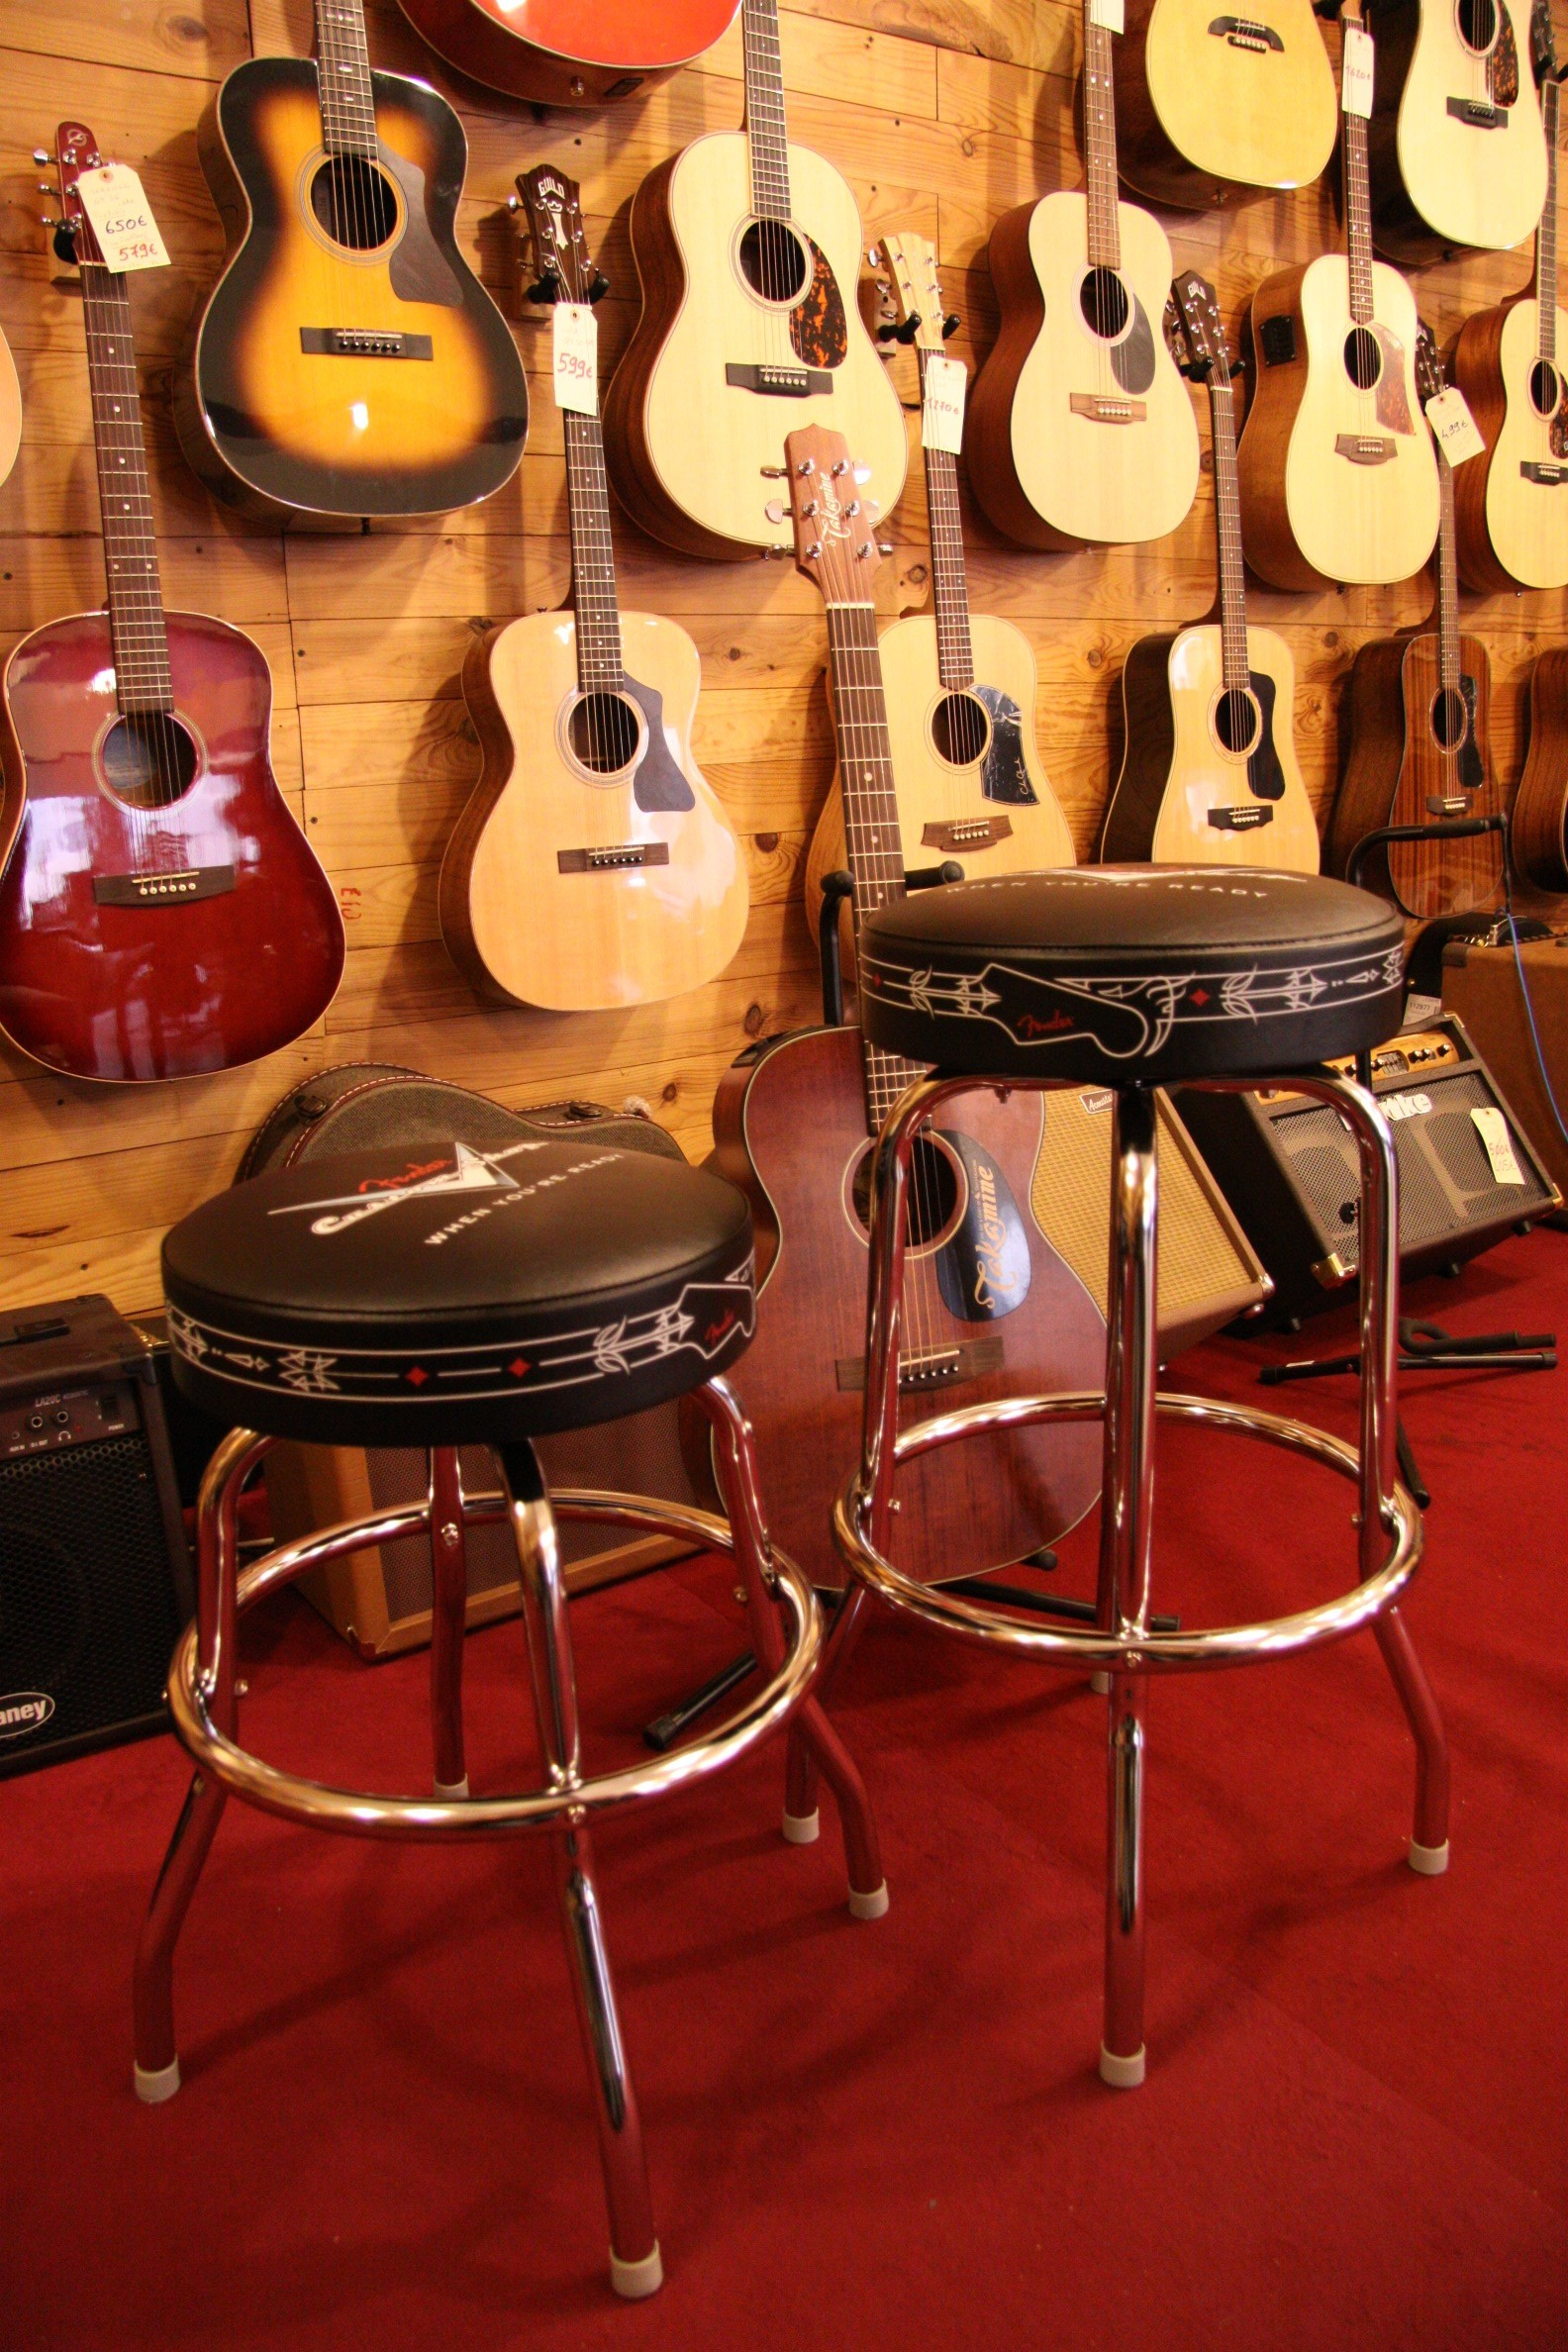 tabouret fender custom shop rockshop magasin de guitares montpellier magasin de musique. Black Bedroom Furniture Sets. Home Design Ideas